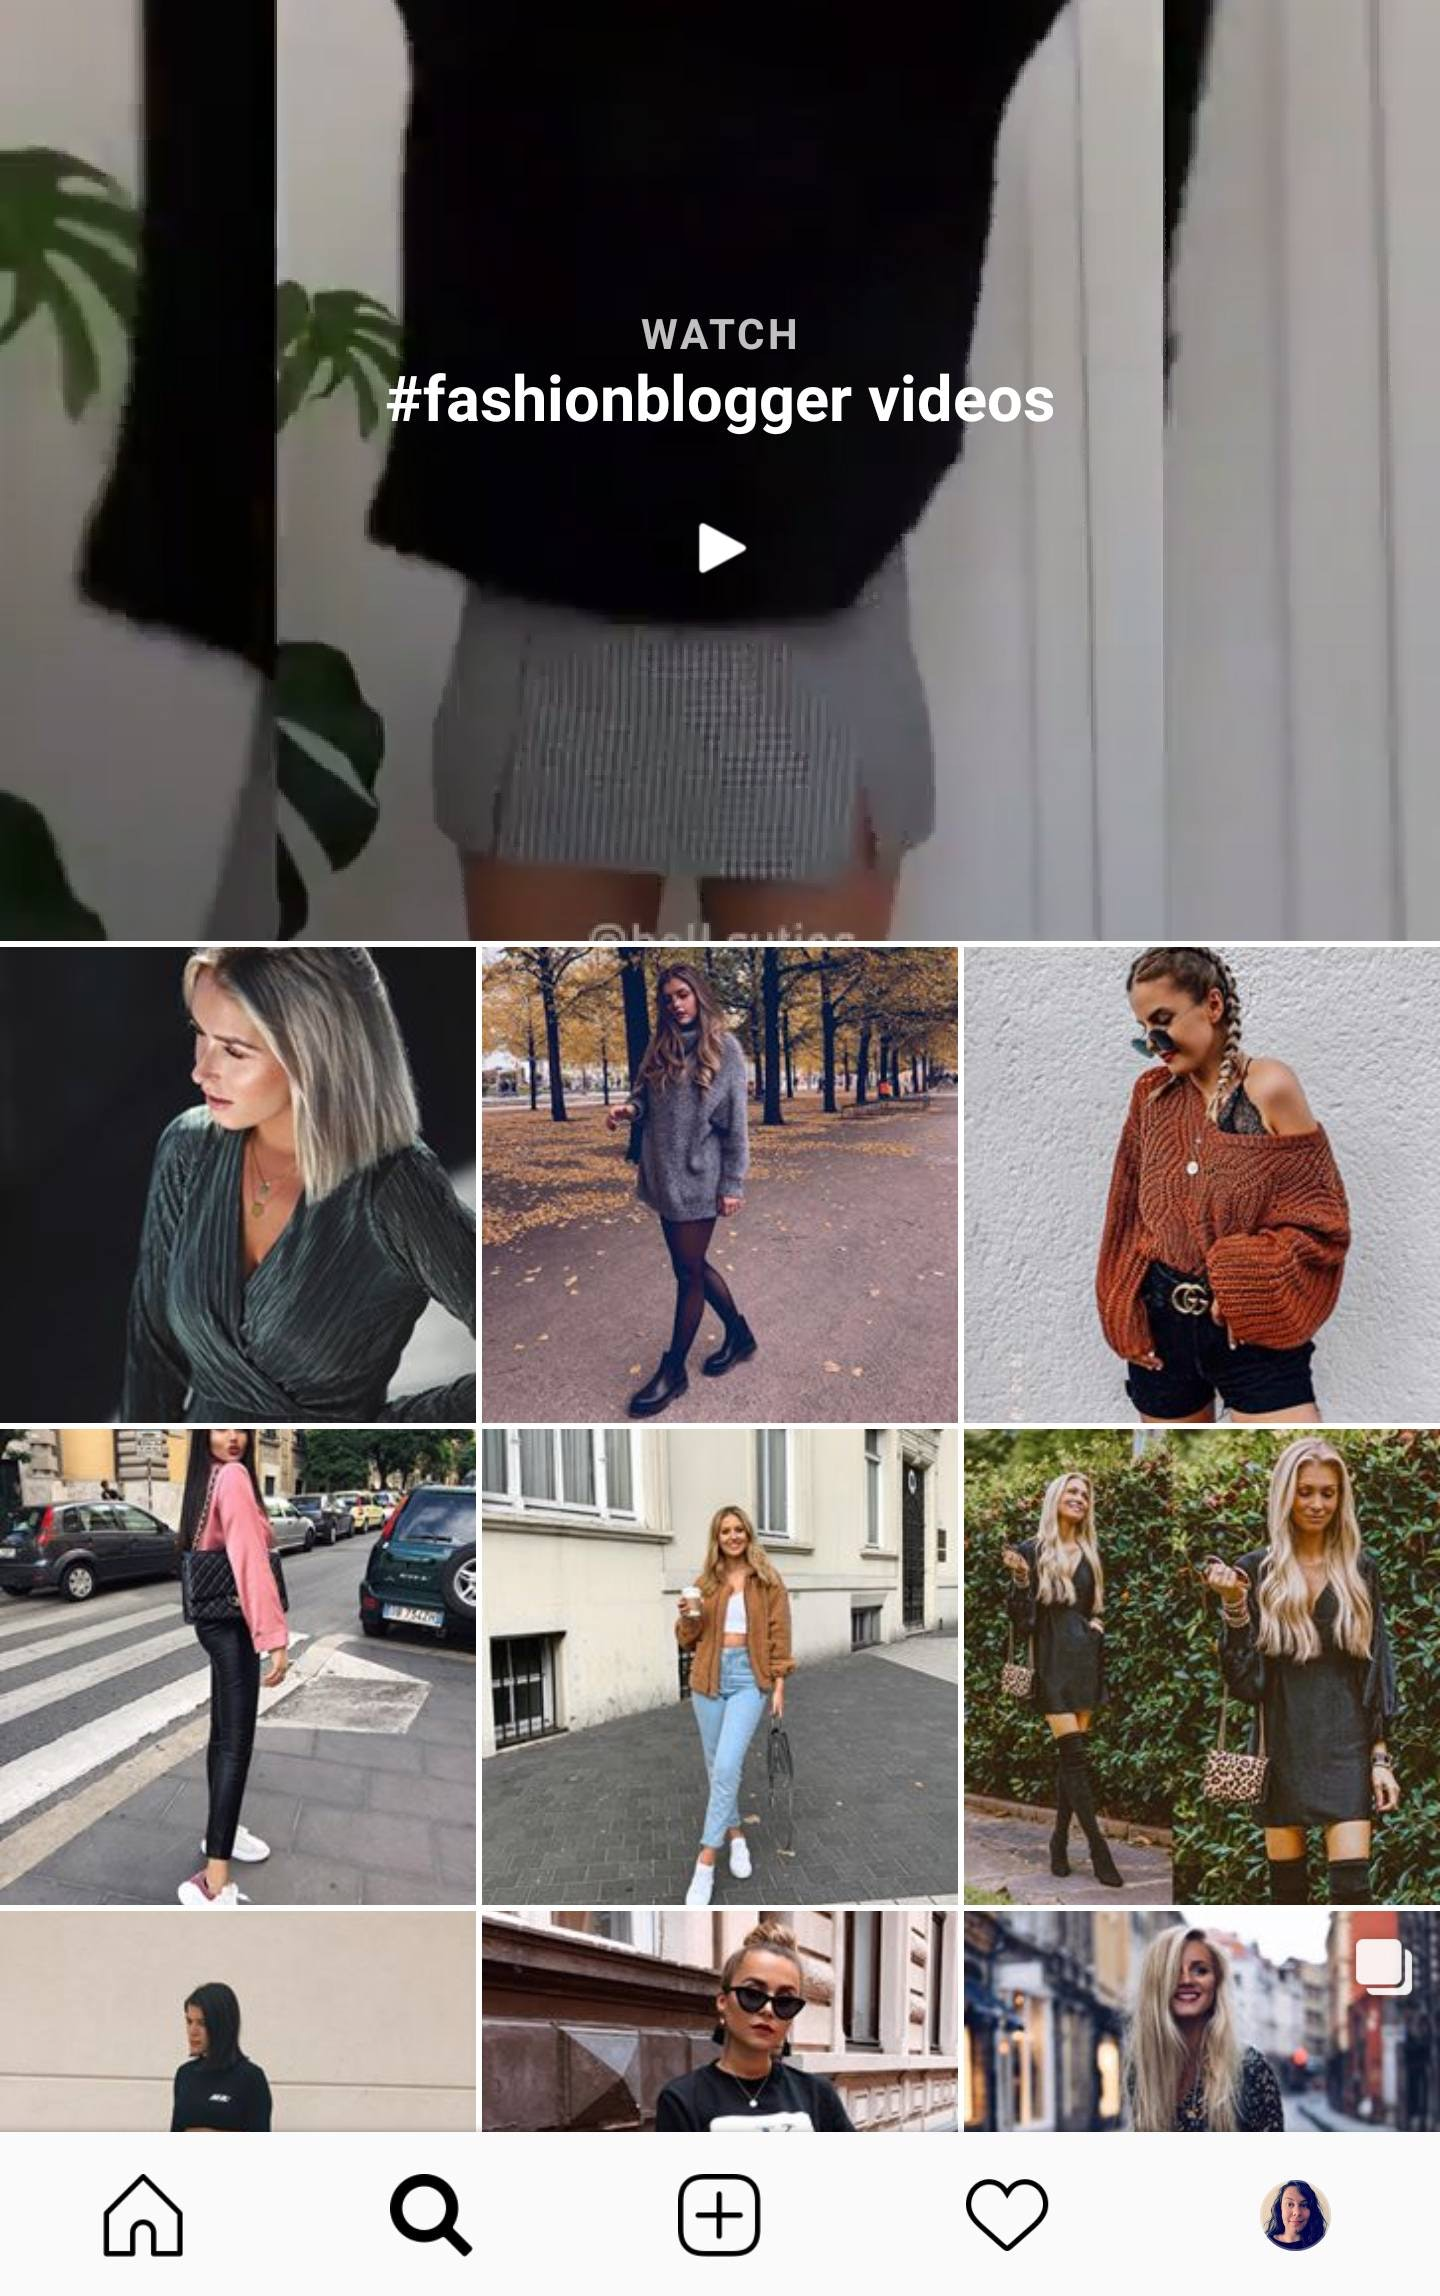 instagram seach fashion bloggers